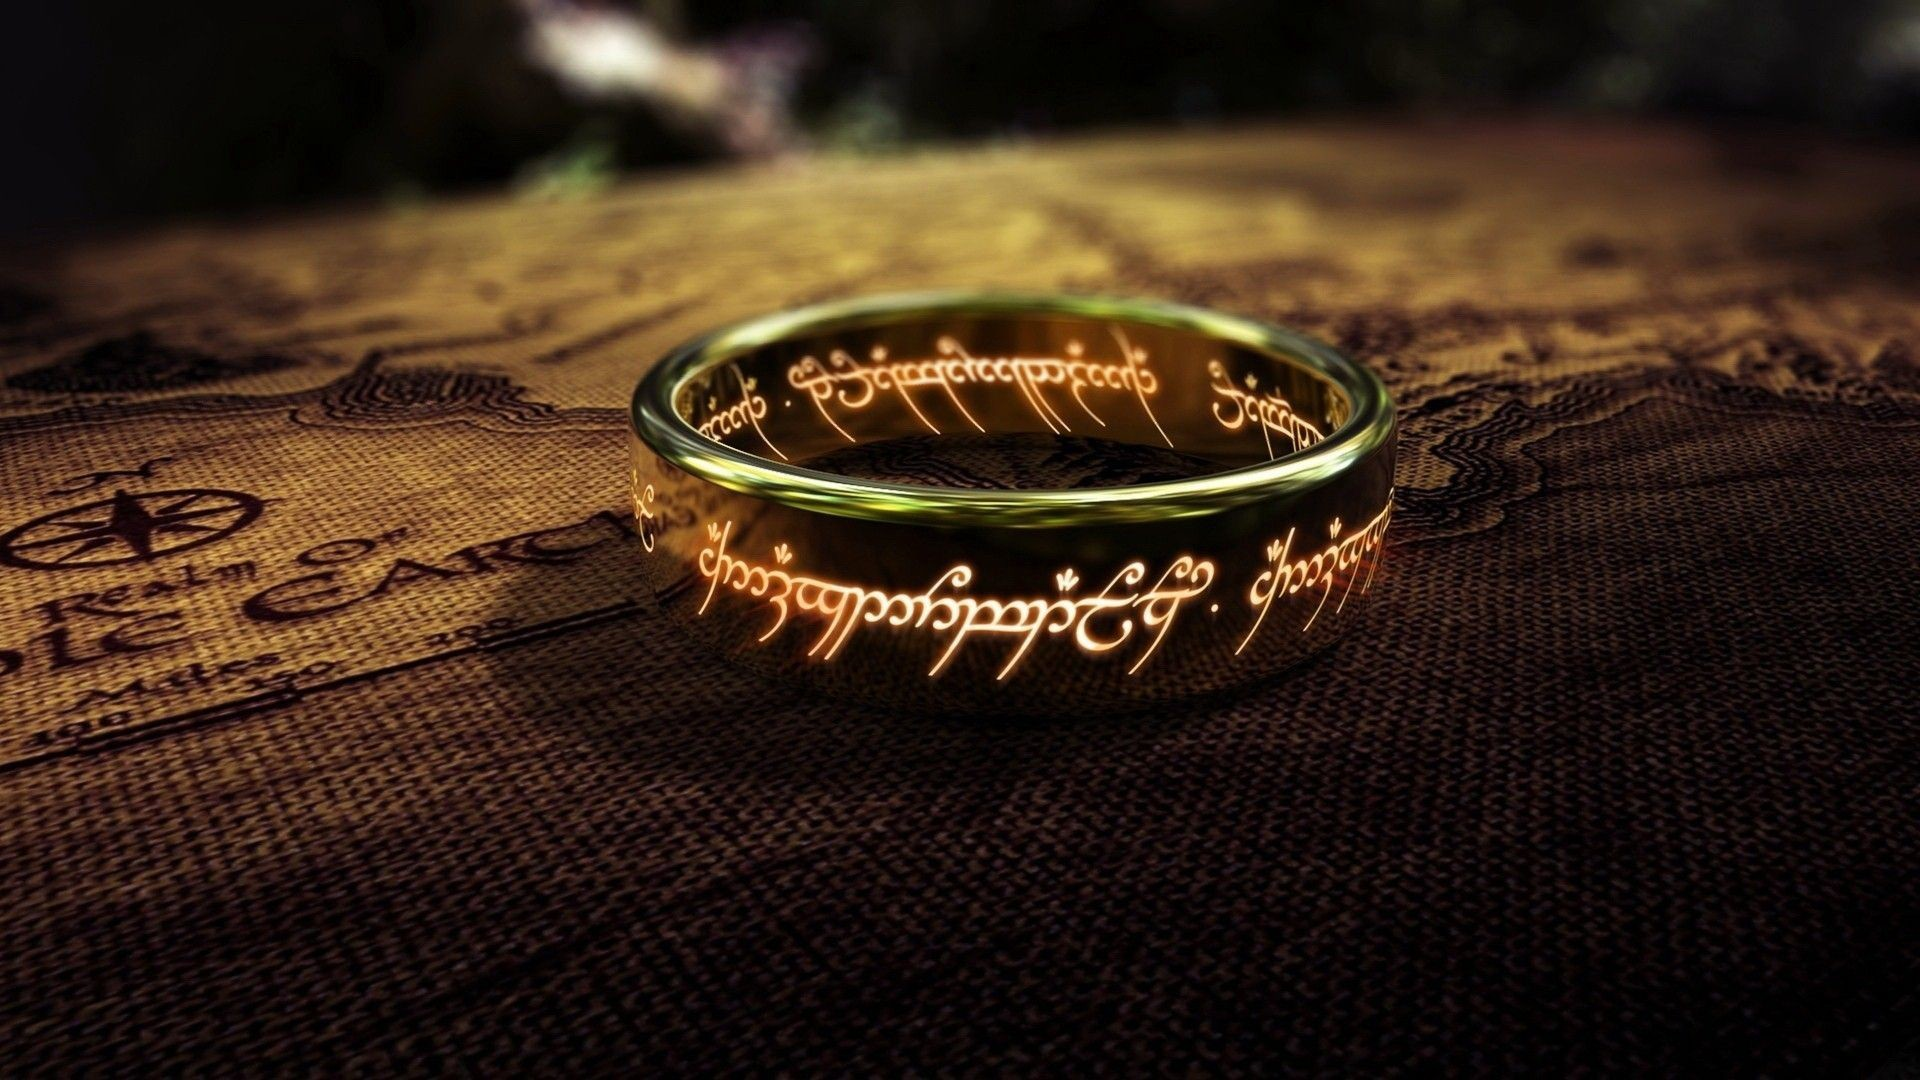 1920x1080 ... the lord of the rings wallpapers wallpaper picture images ...